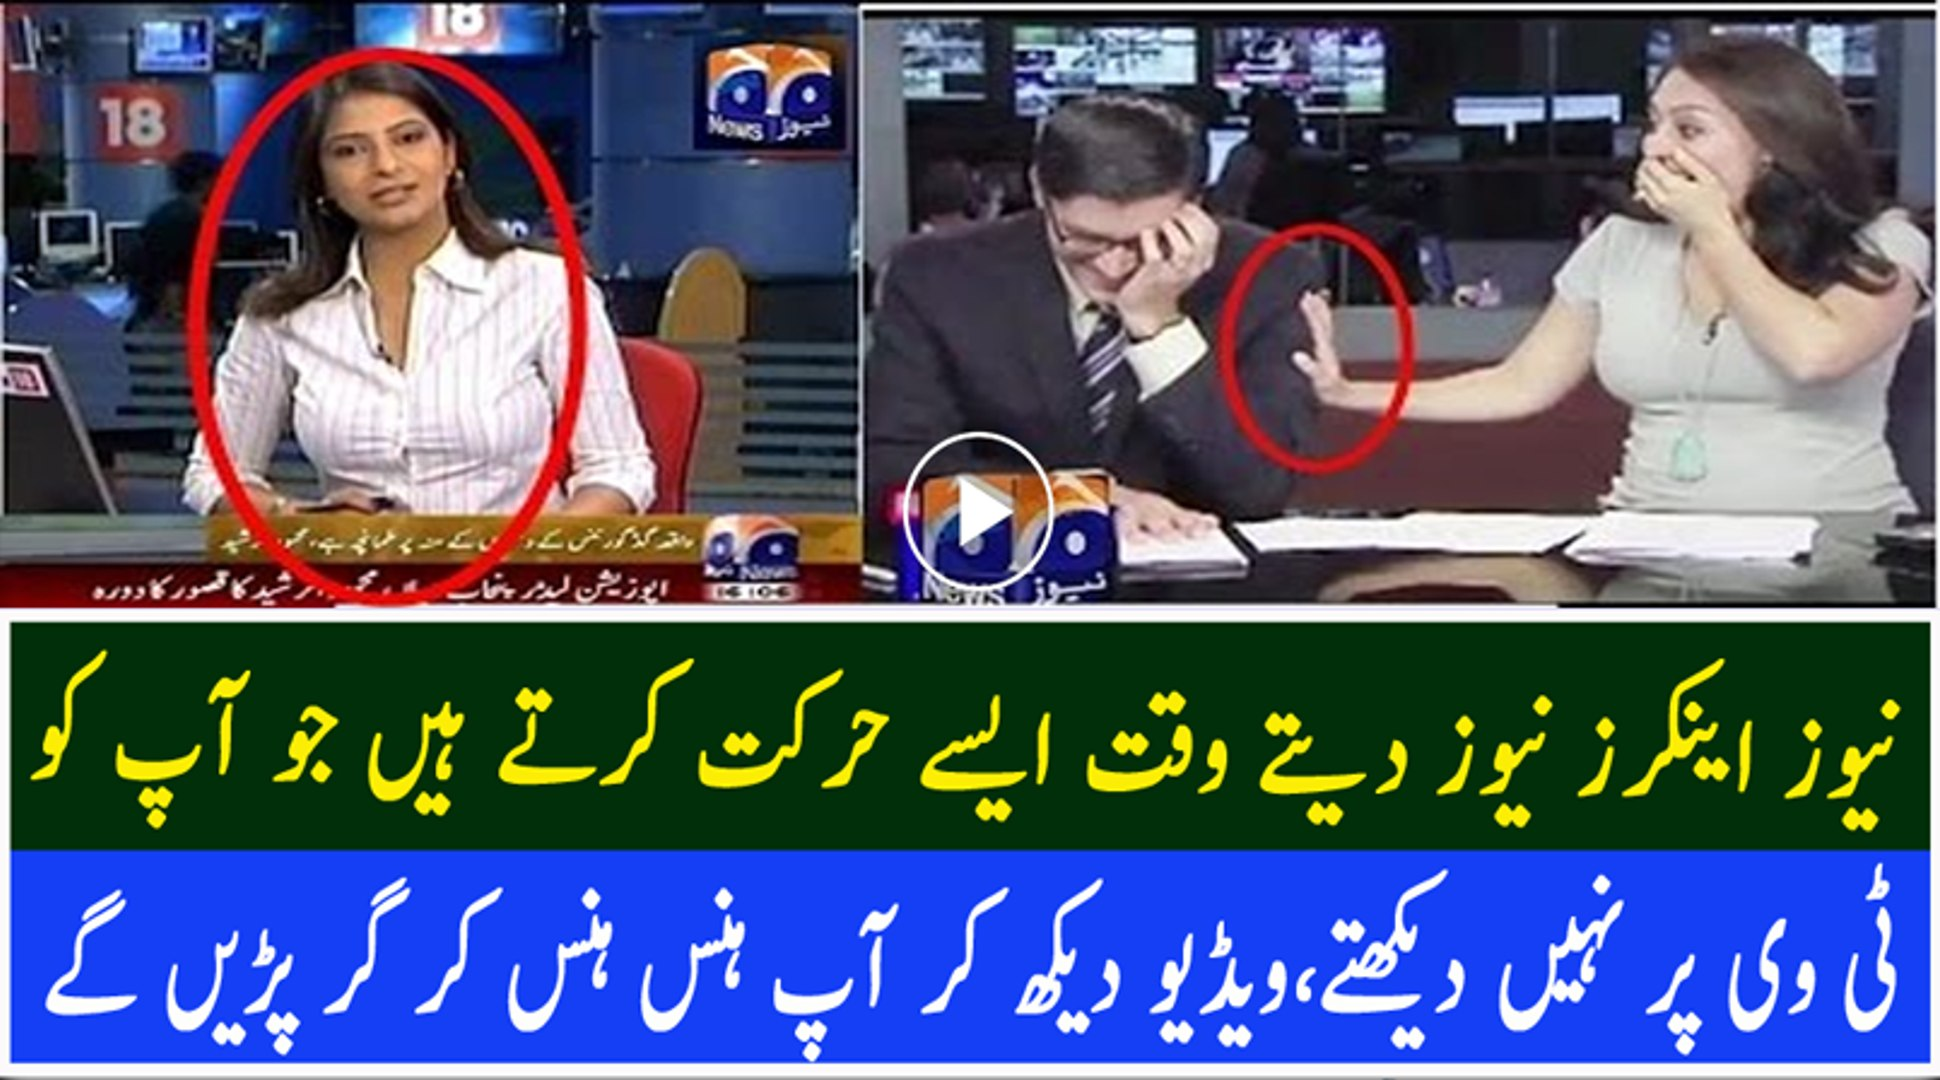 news anchors are amazing - news bloopers -